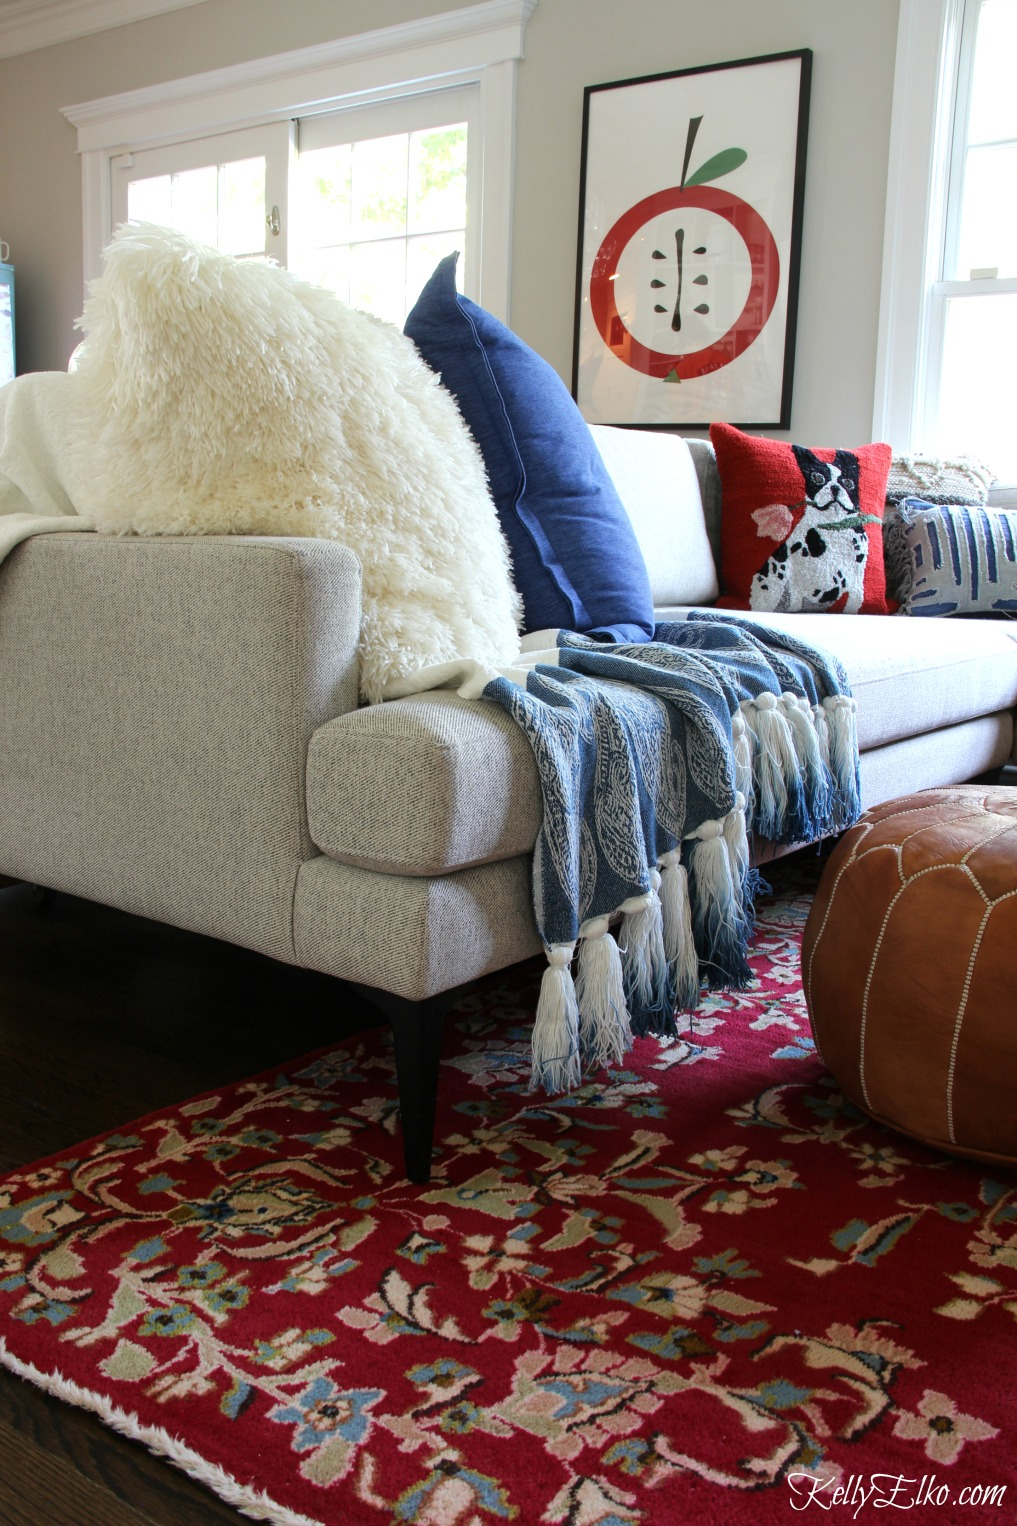 100 red oriental rug living room services nilipour oriental rugs homewood alabama asian screen. Black Bedroom Furniture Sets. Home Design Ideas